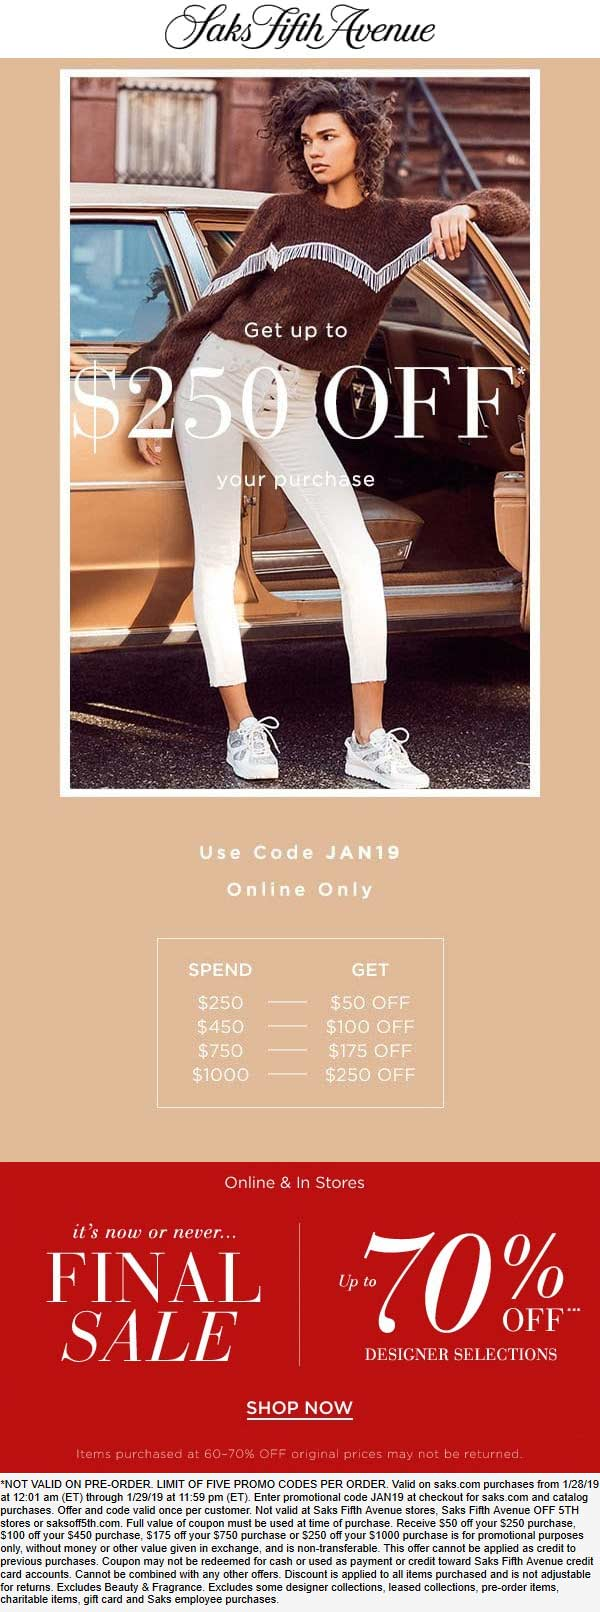 Saks Fifth Avenue Coupon May 2019 $50-$250 off $250+ online today at Saks Fifth Avenue via promo code JAN19